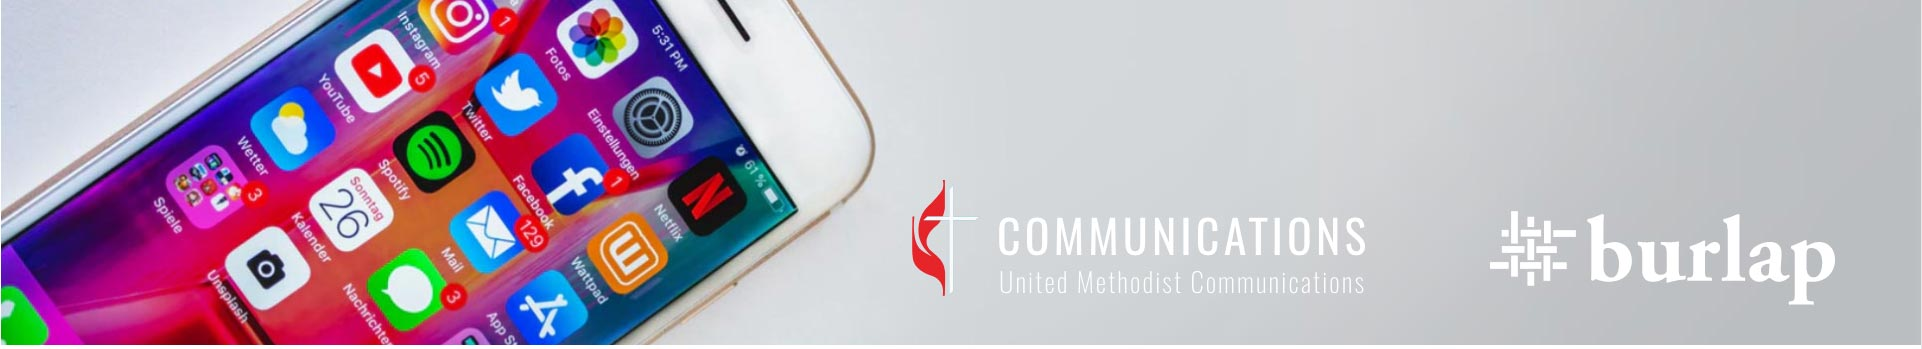 UMC Local Church services provides grants to local churches seeking to improve their social media marketing